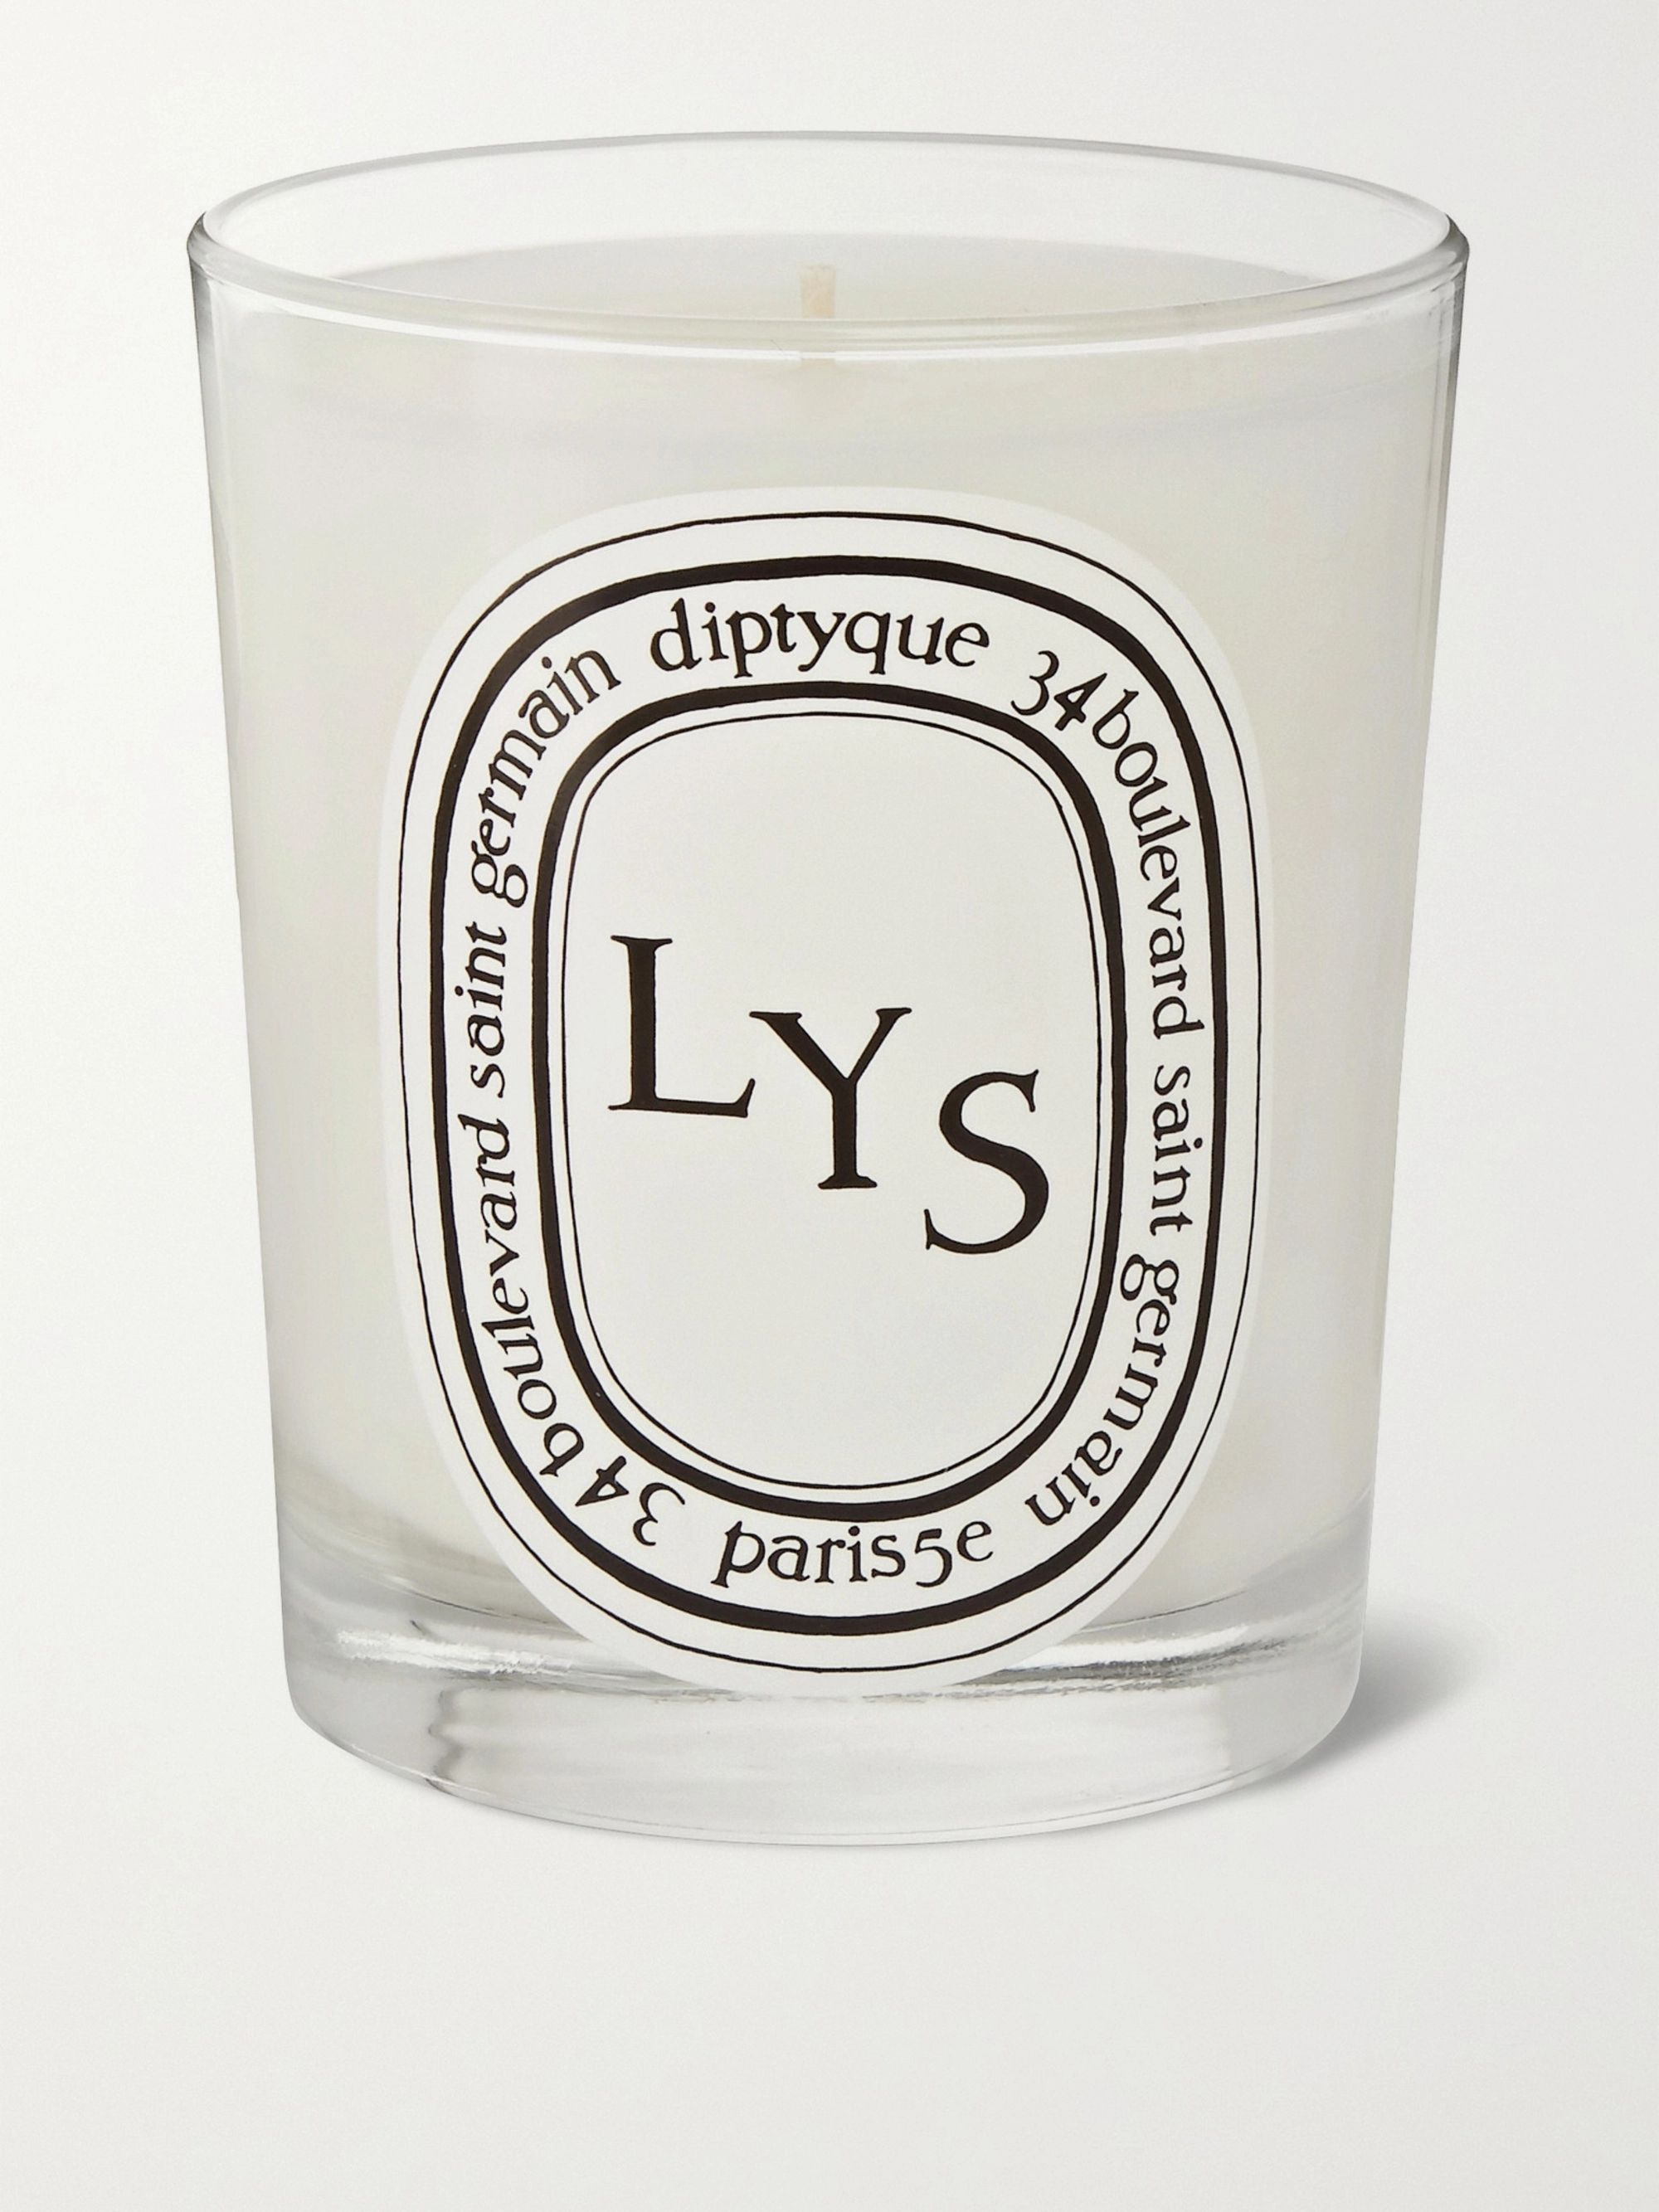 Diptyque Lys Scented Candle, 190g